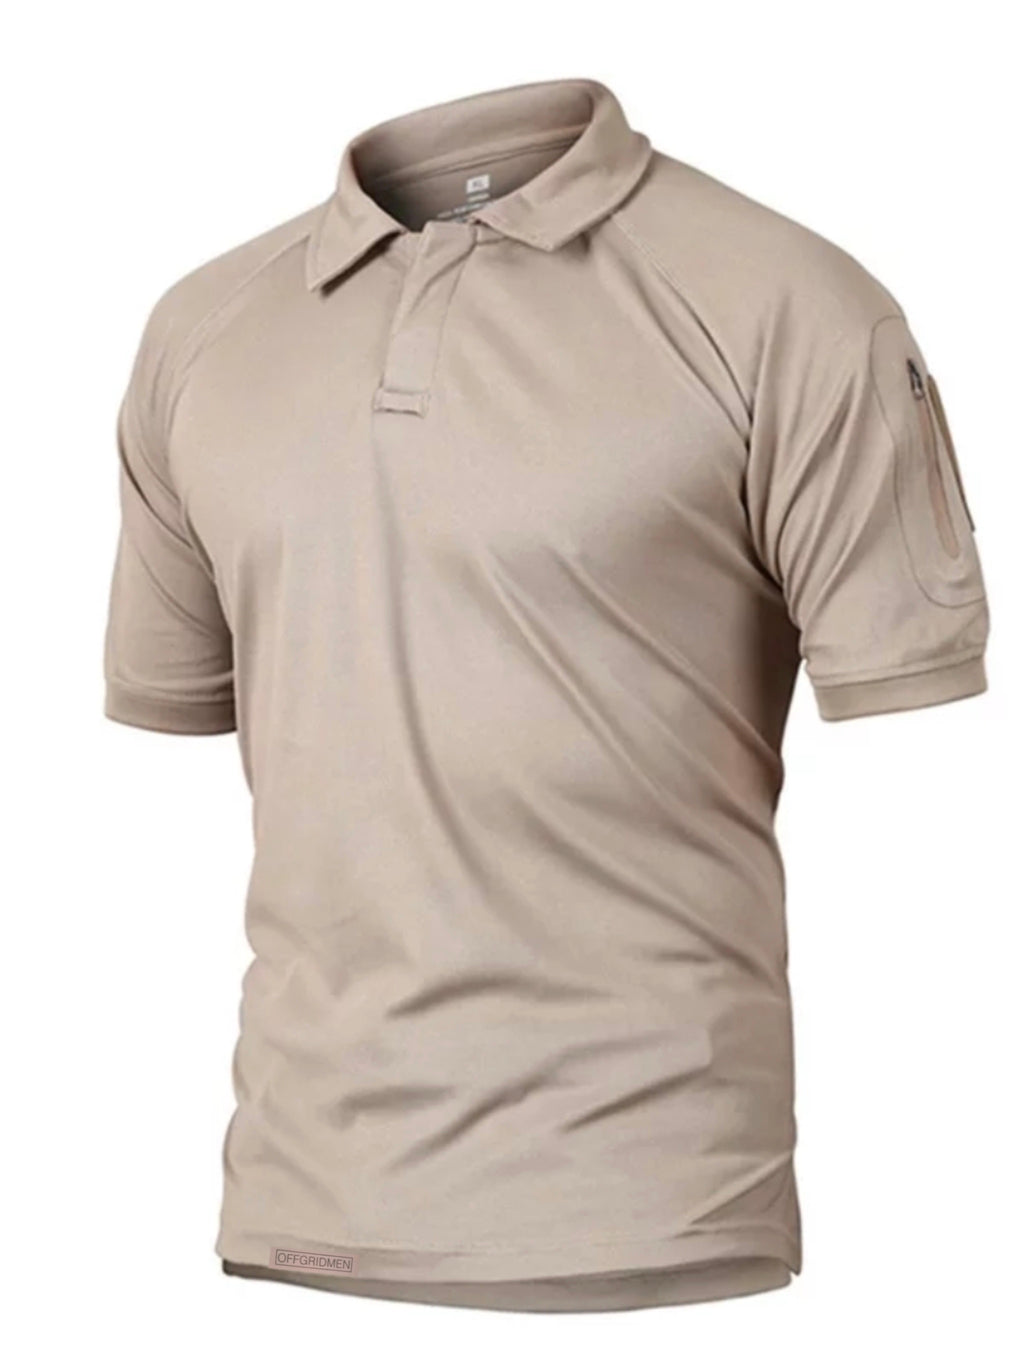 Mens collar style sand tactical shirt